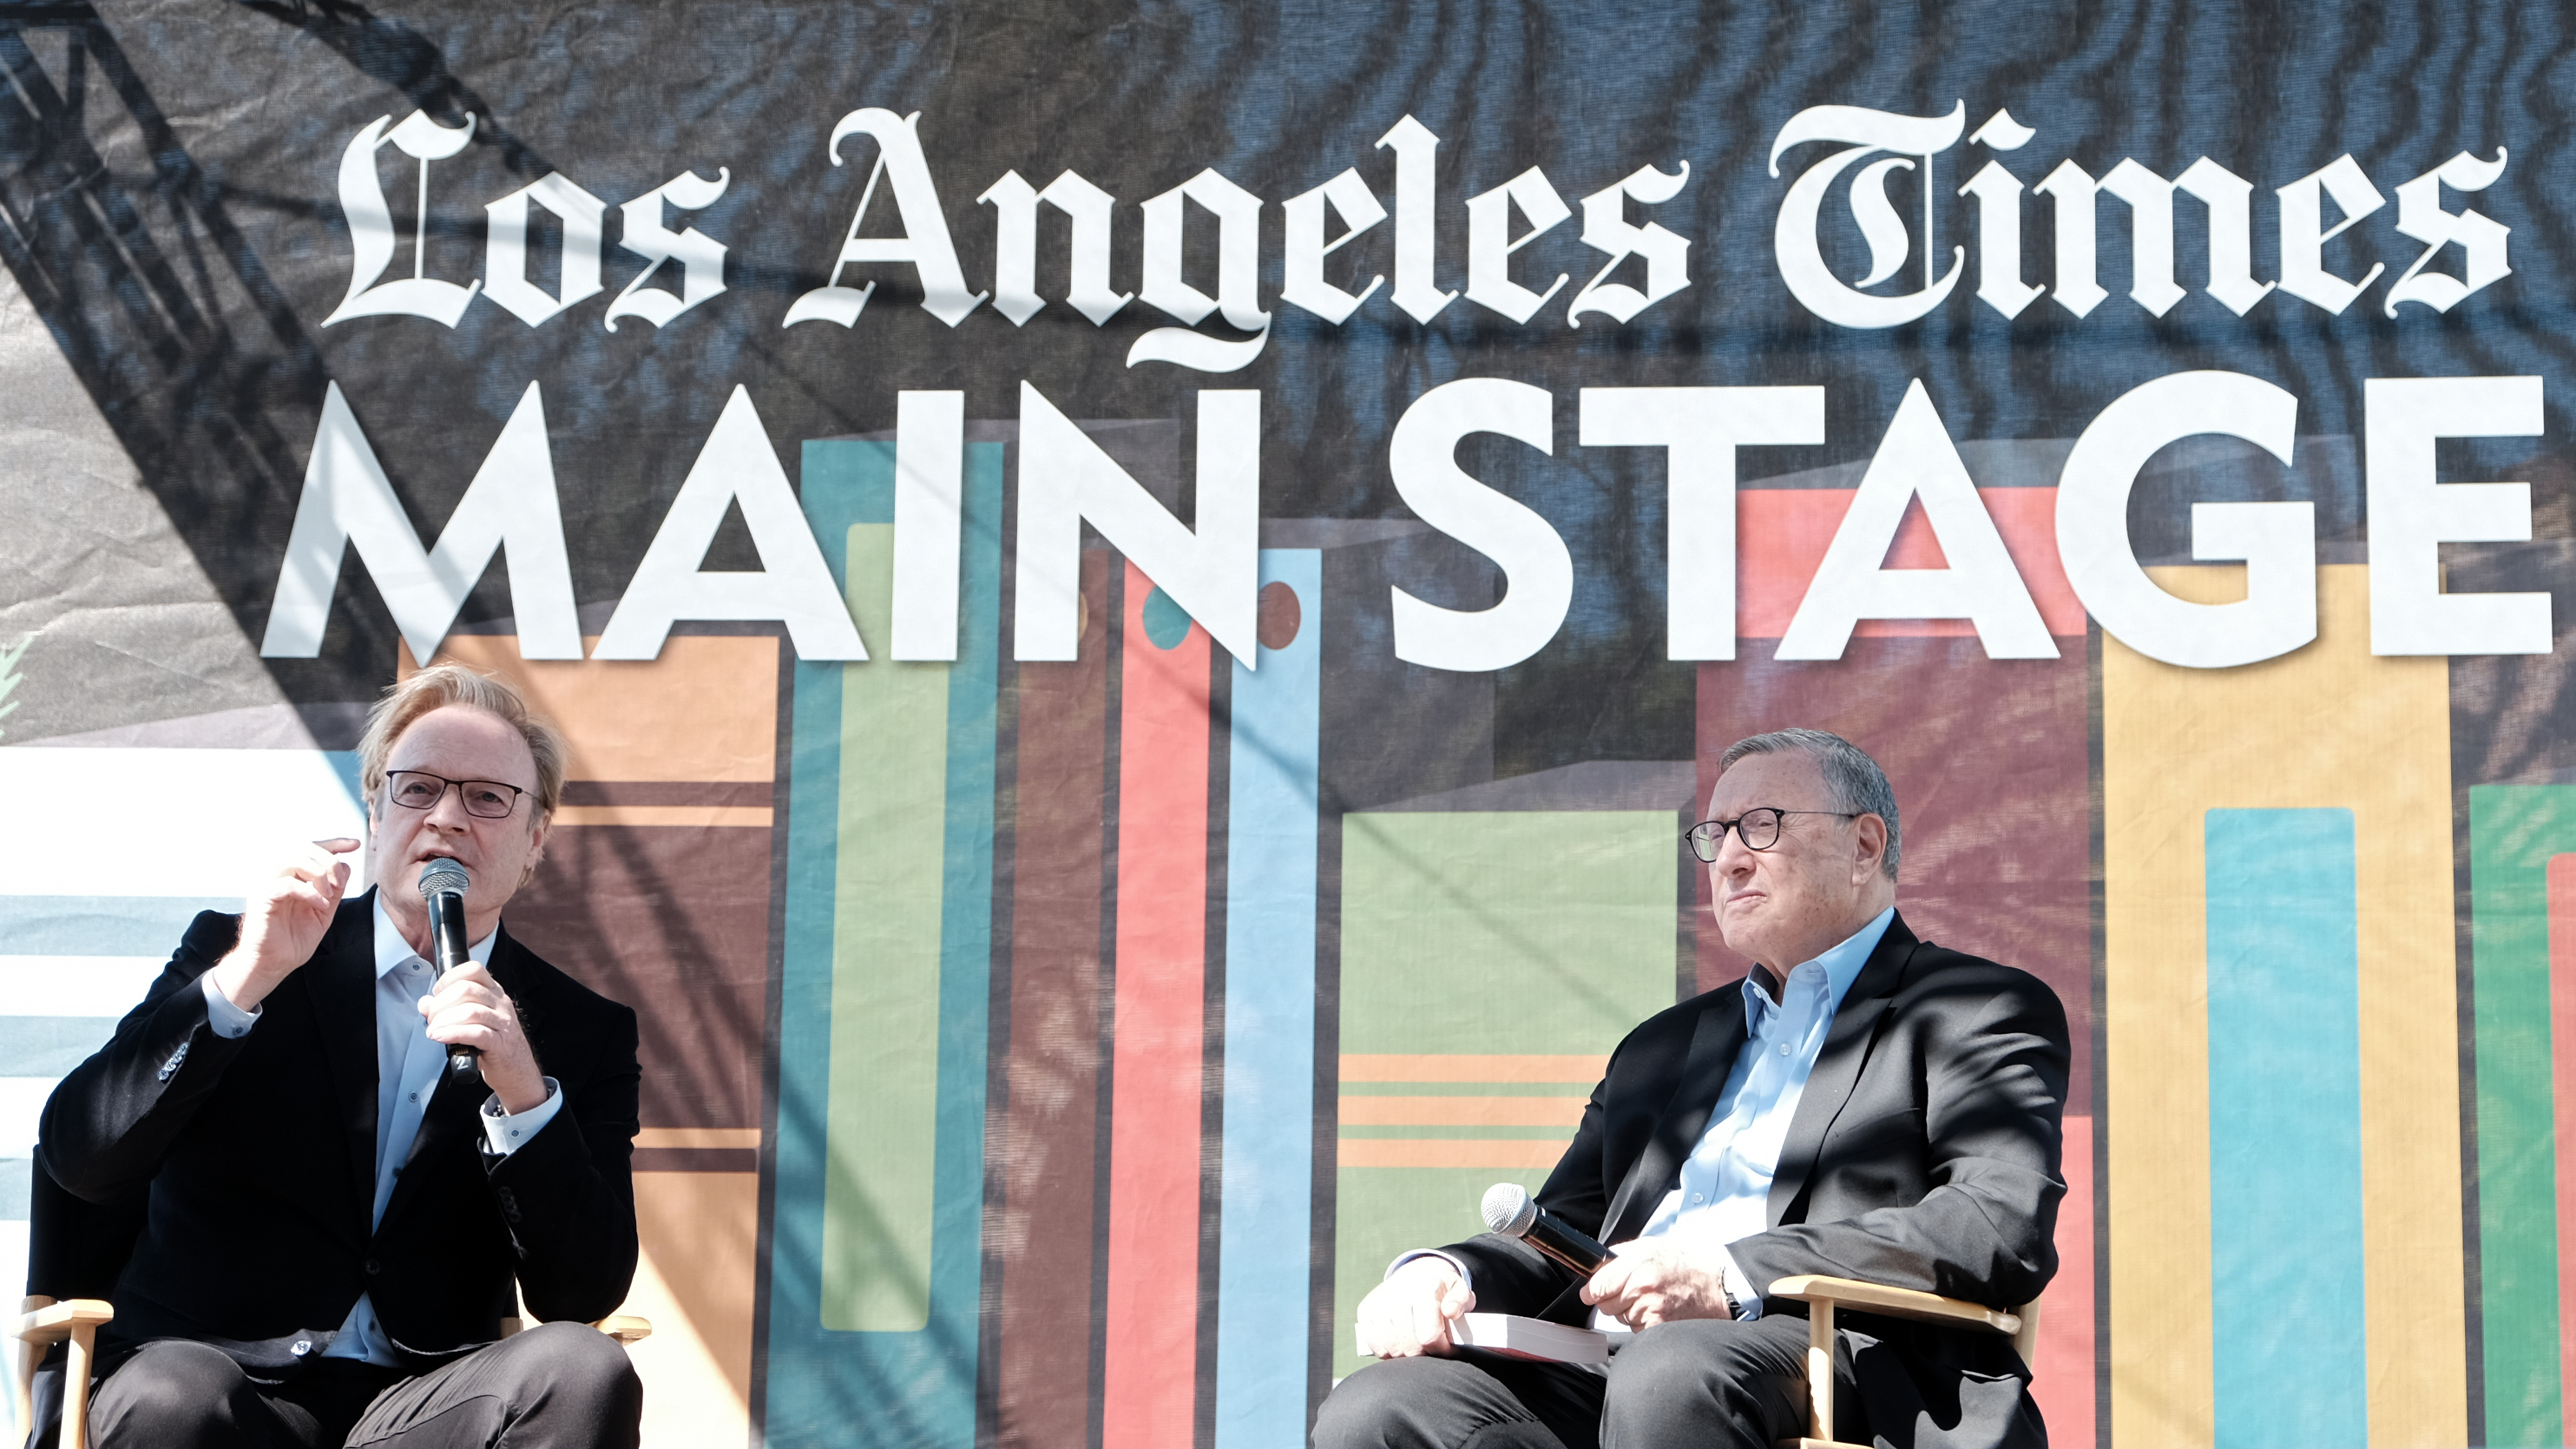 LA Times Executive Editor Norman Pearlstine (right) listens to Lawrence O'Donnell at the 2019 Los Angeles Times Festival of Books in April 2019.